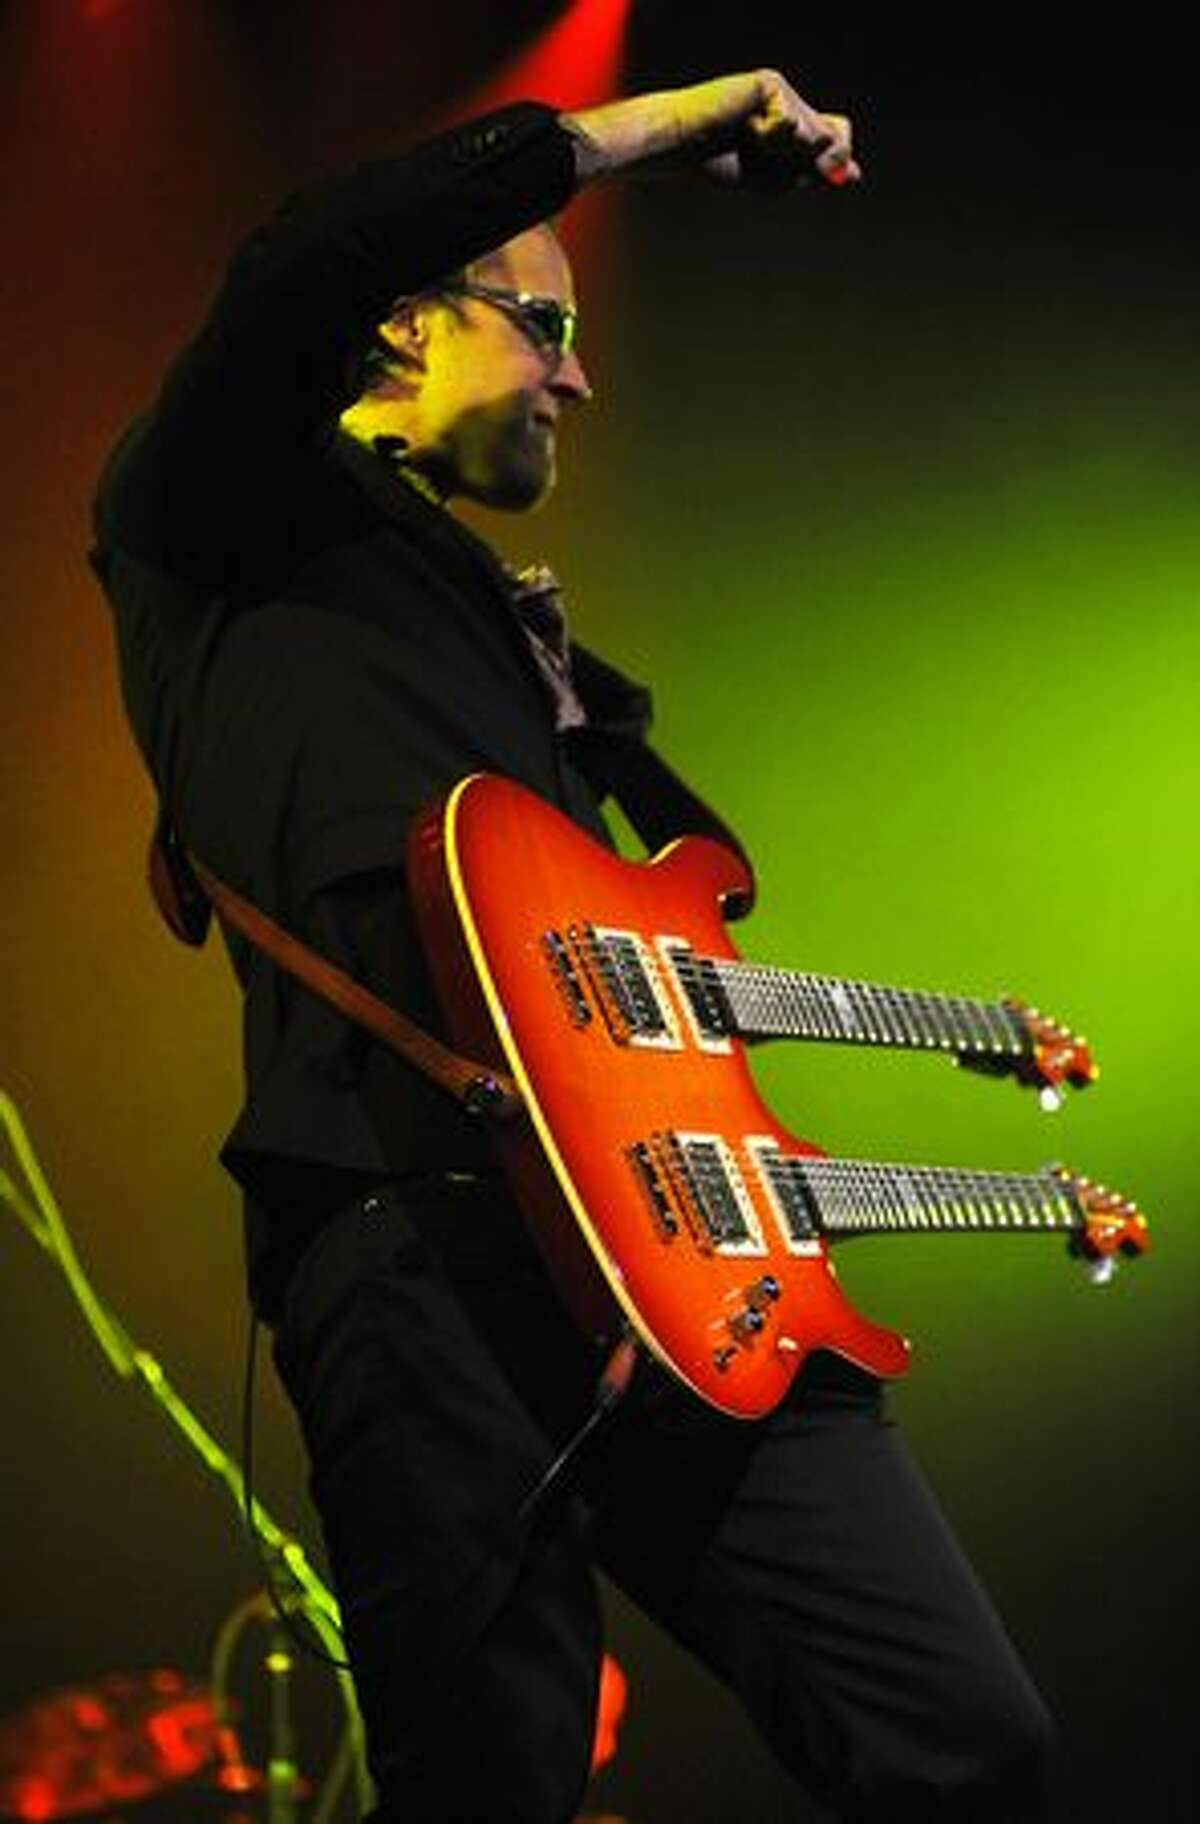 Joe Bonamassa performs at The Moore Theater in Seattle on March 5, 2010.